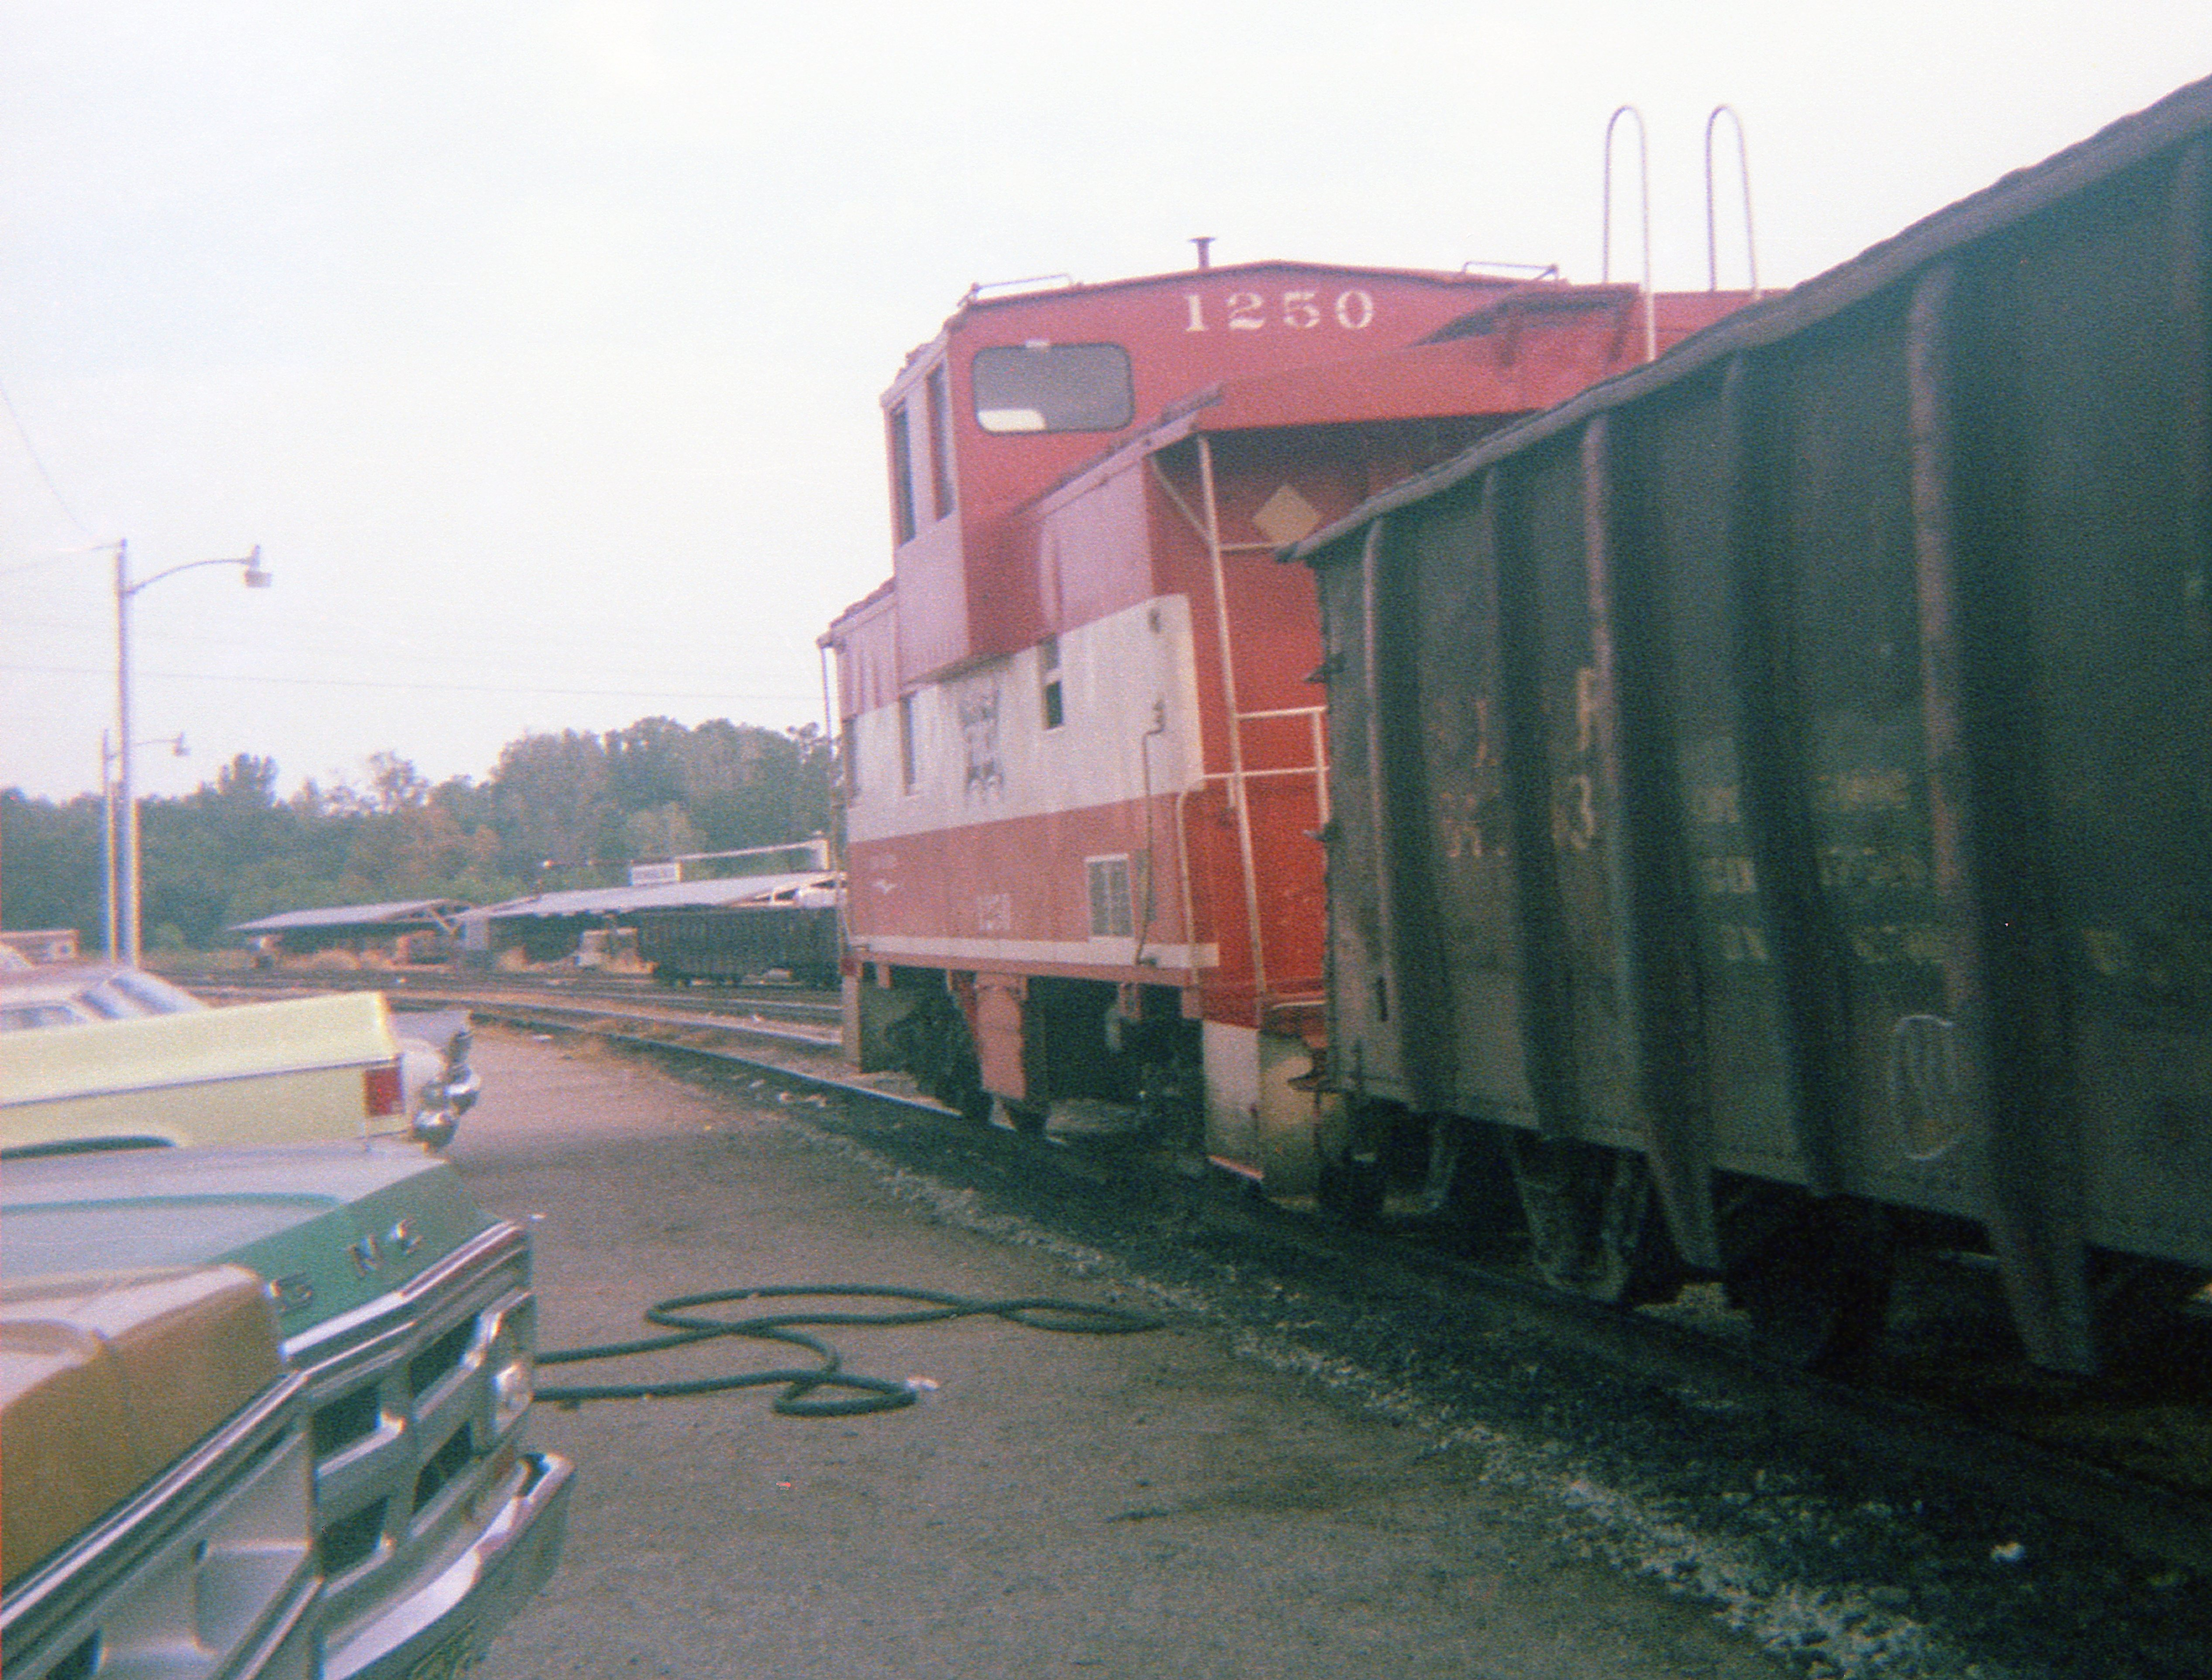 Caboose 1250 at Thayer, Missouri on August 19, 1978 (R.R. Taylor)